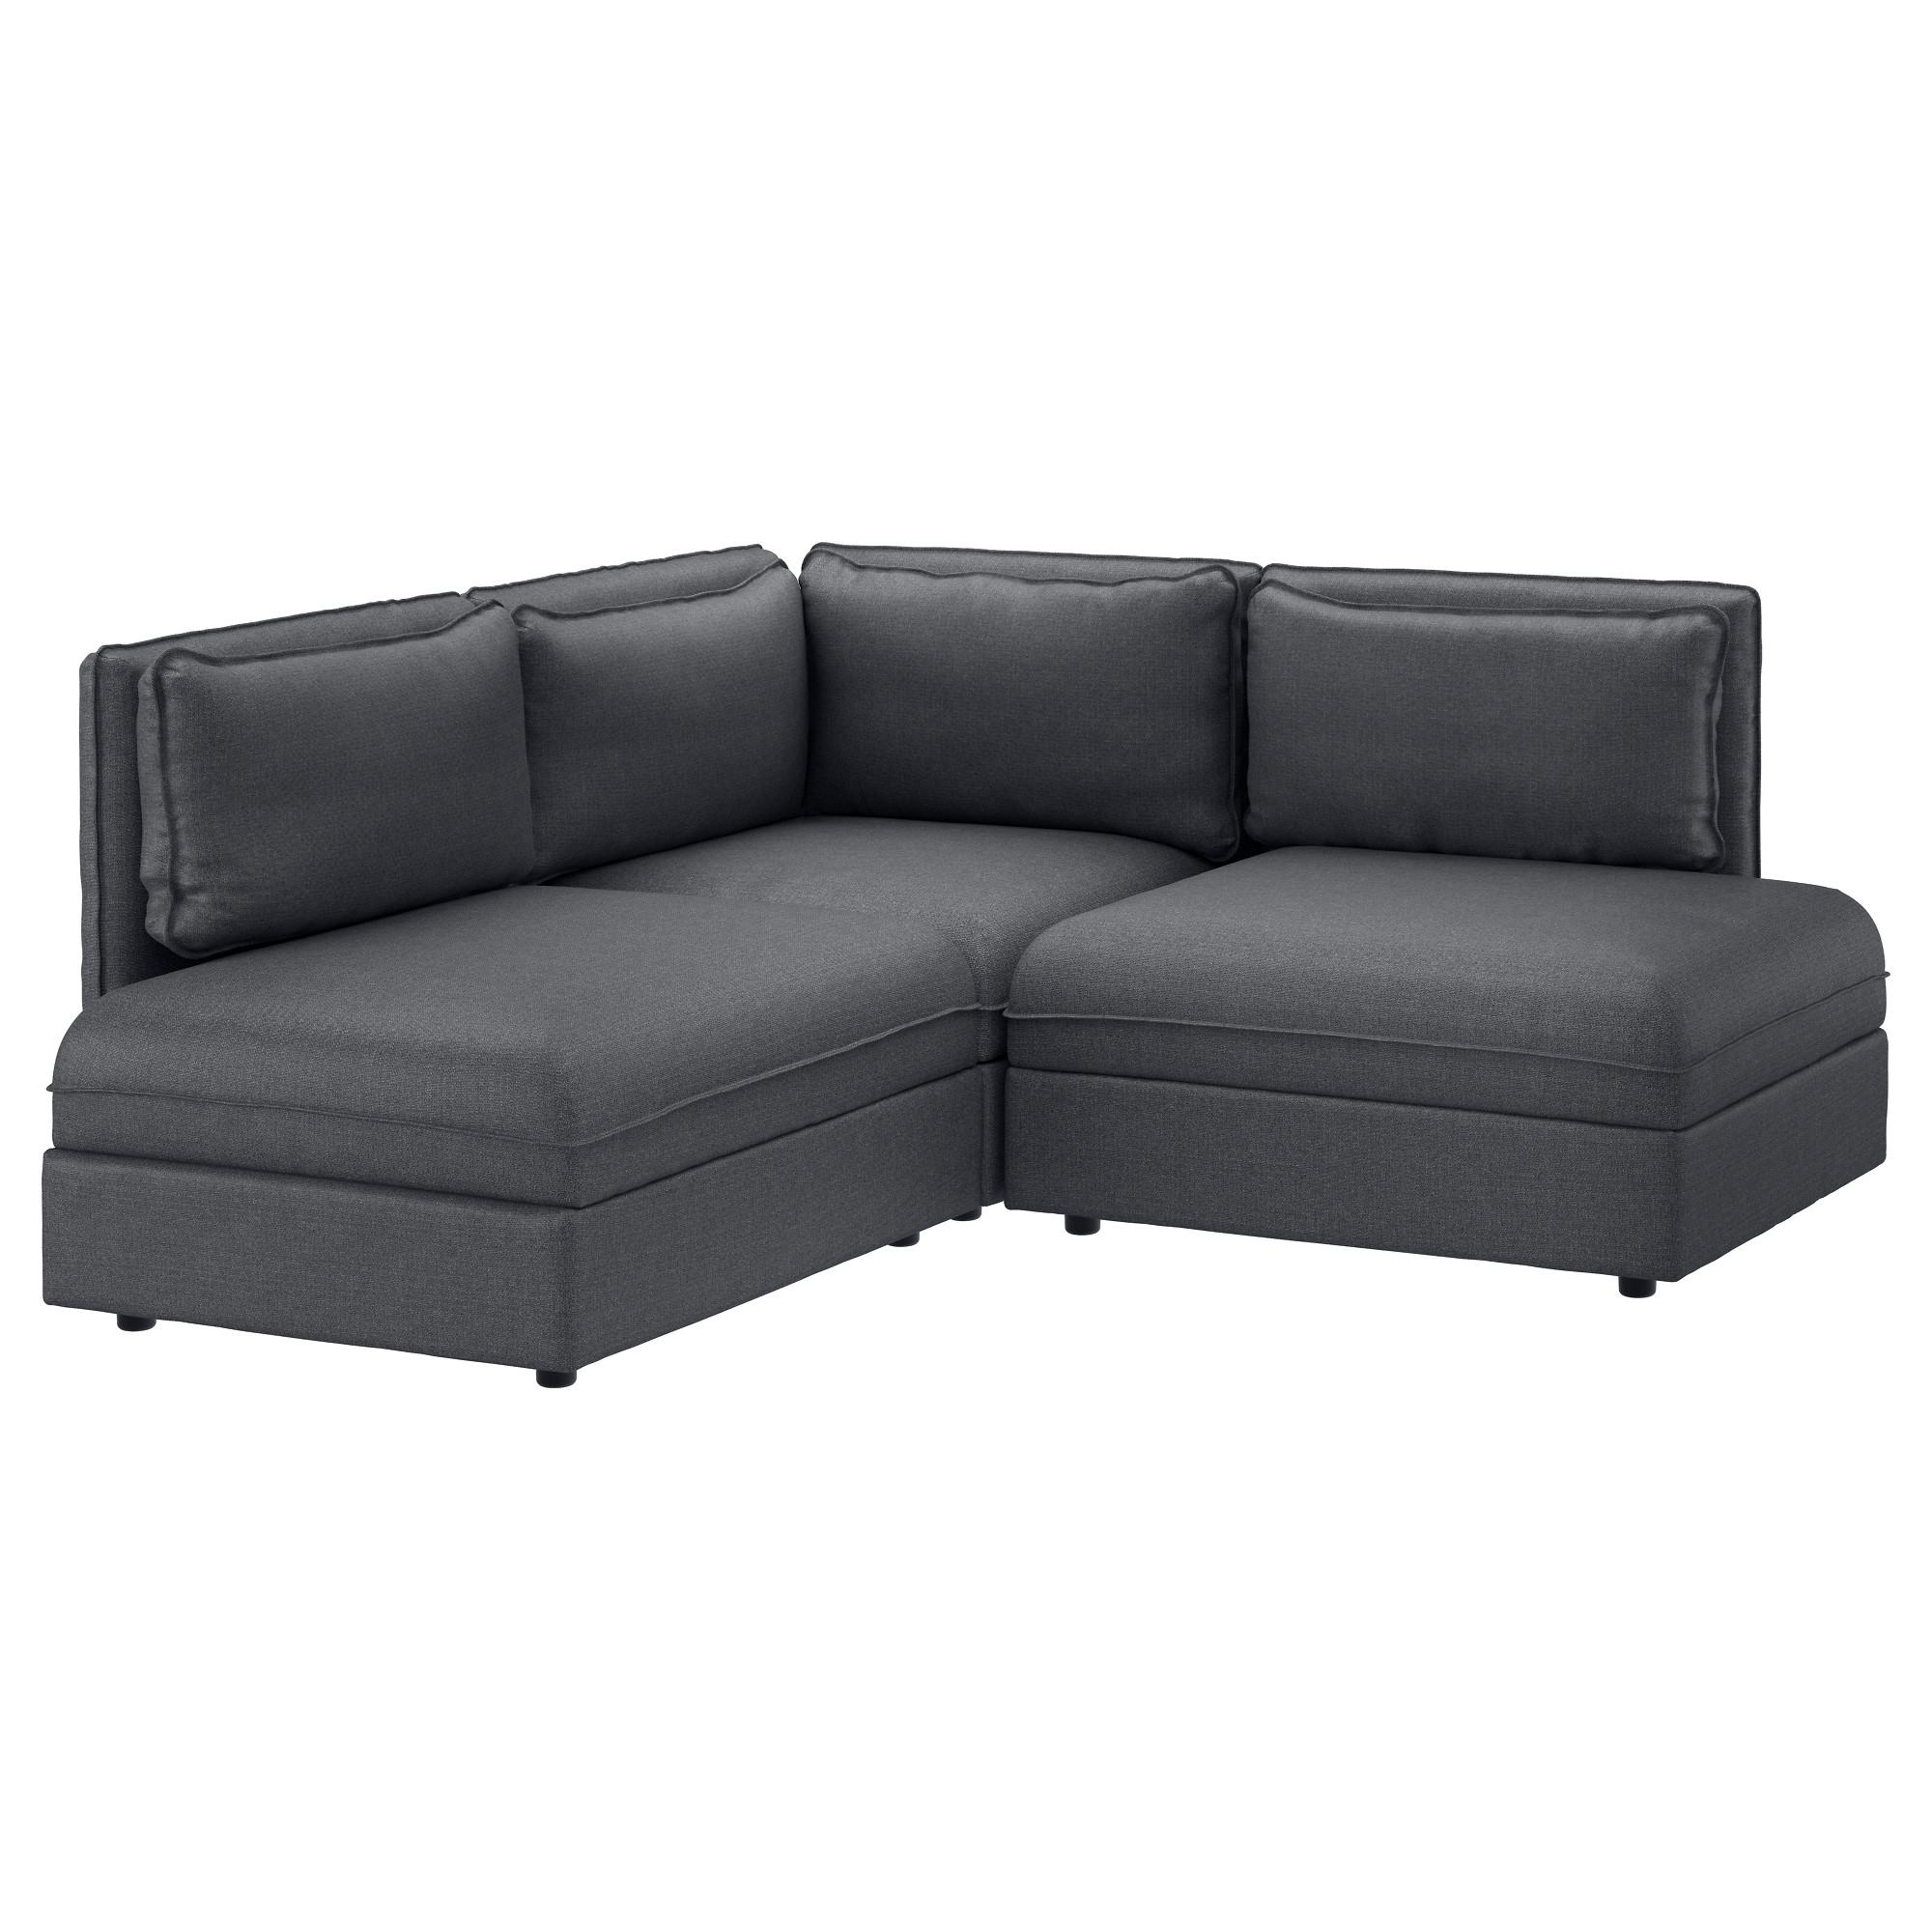 Fabric Sectional Sofas – Ikea In 2 Seat Sectional Sofas (Image 7 of 15)